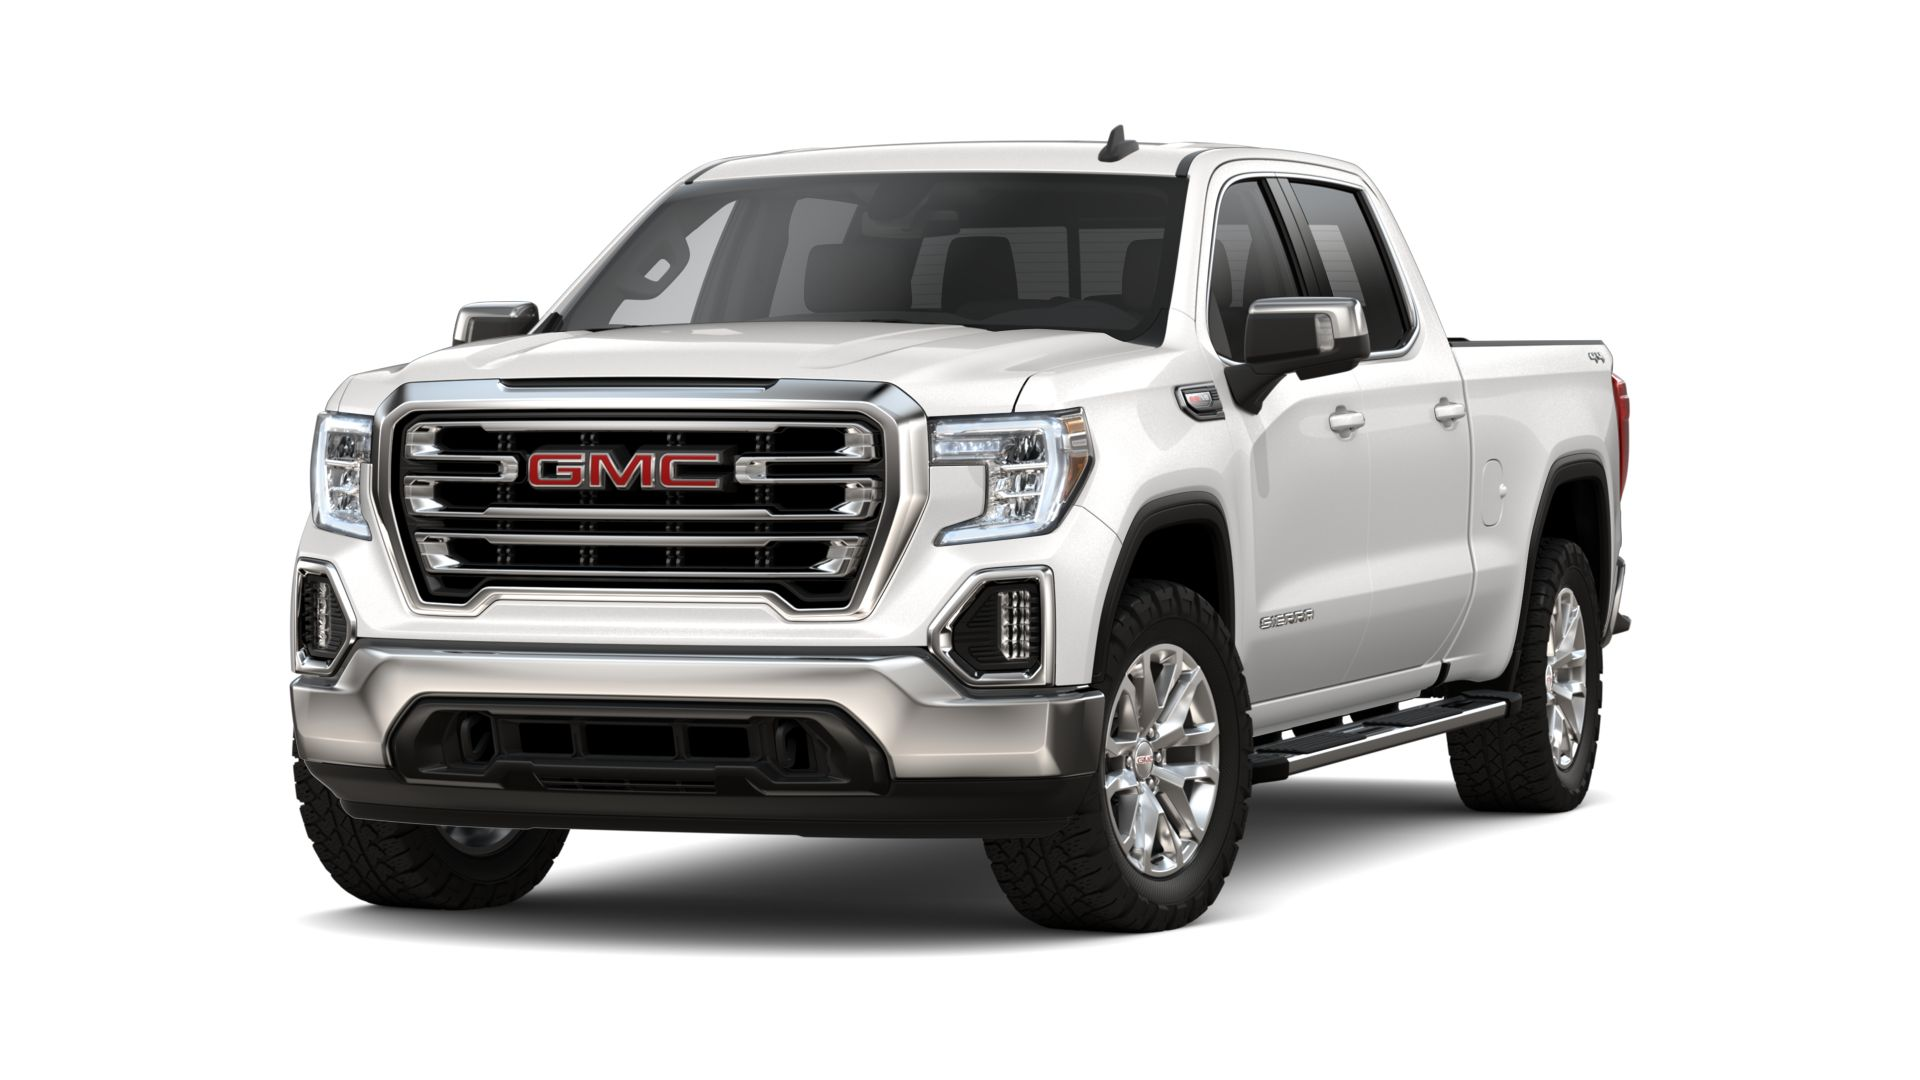 New 2020 GMC Sierra 1500 SLT FOUR WHEEL DRIVE Crew Cab